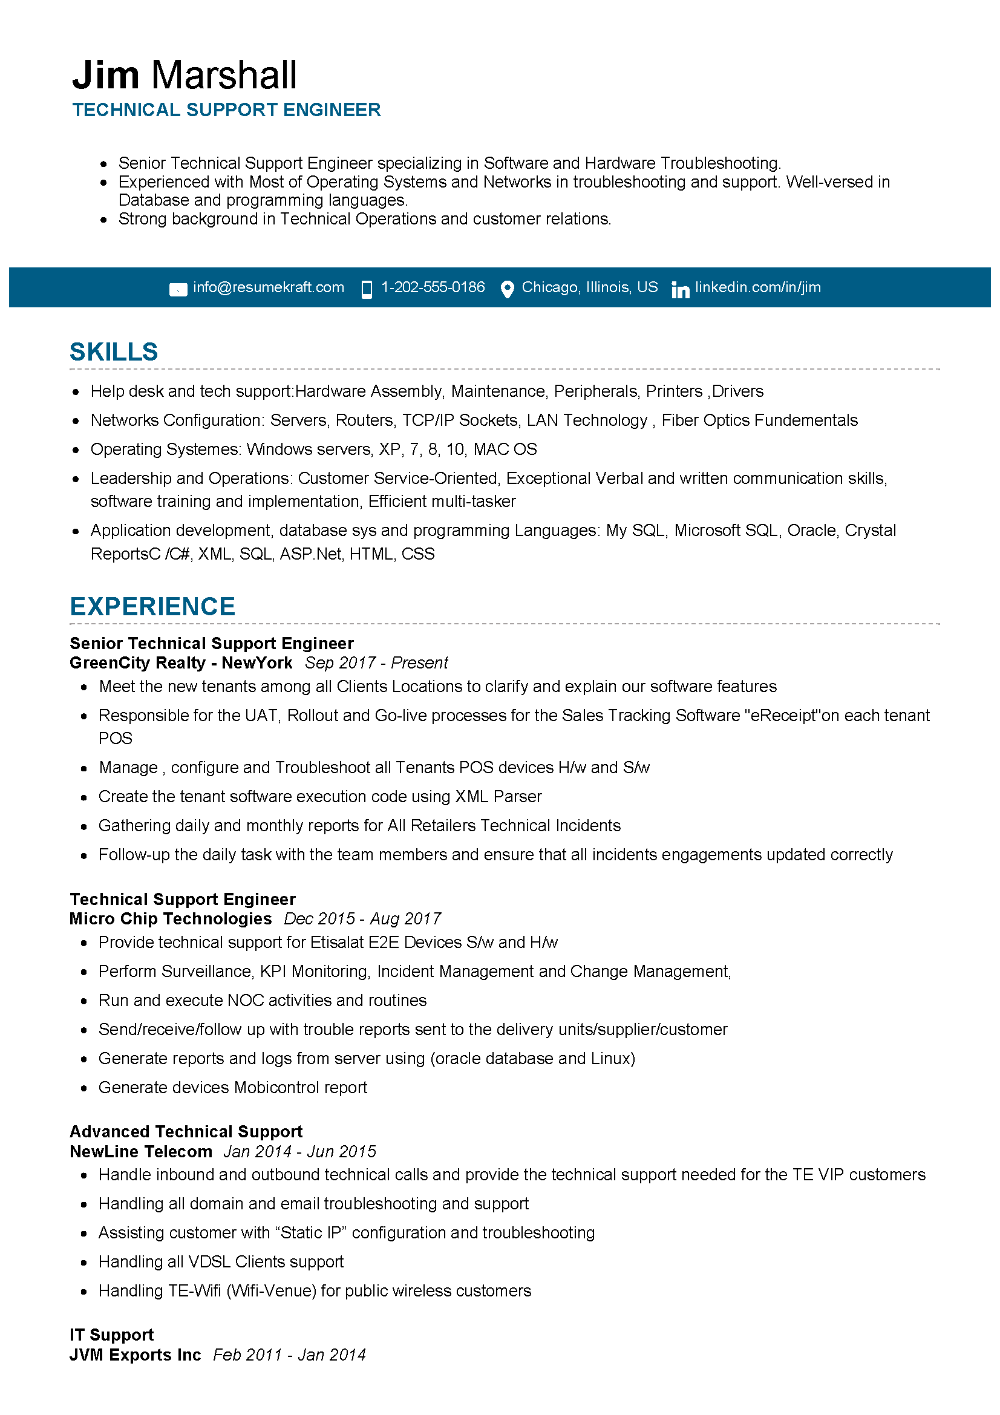 Resume Template College Student Good Resume Examples Job Resume Format Job Resume Examples